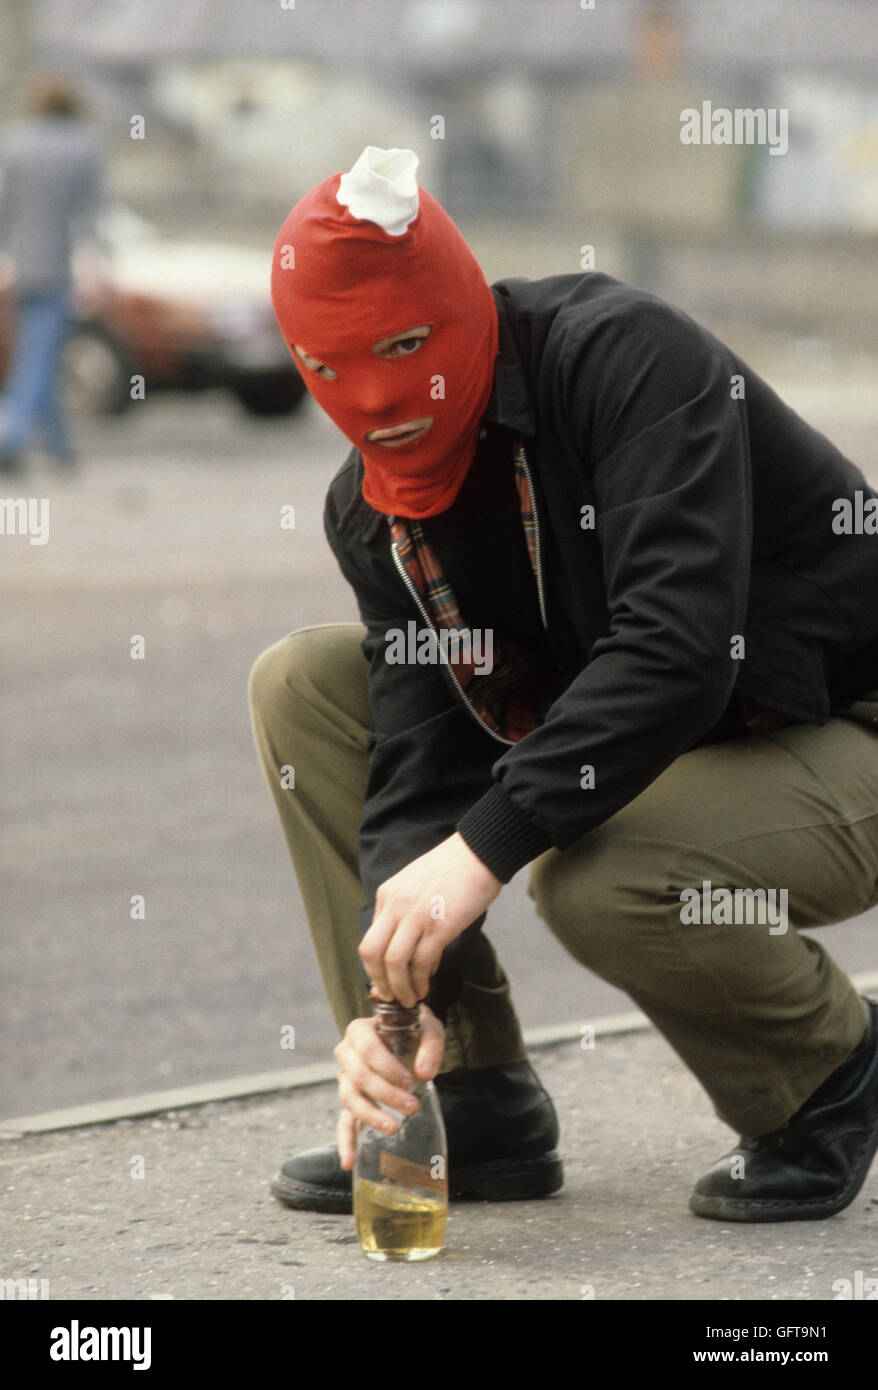 Riot Riots rioting Catholic youth IRA attacking the British army Belfast Northern Ireland Uk conflict  1980s  HOMER - Stock Image